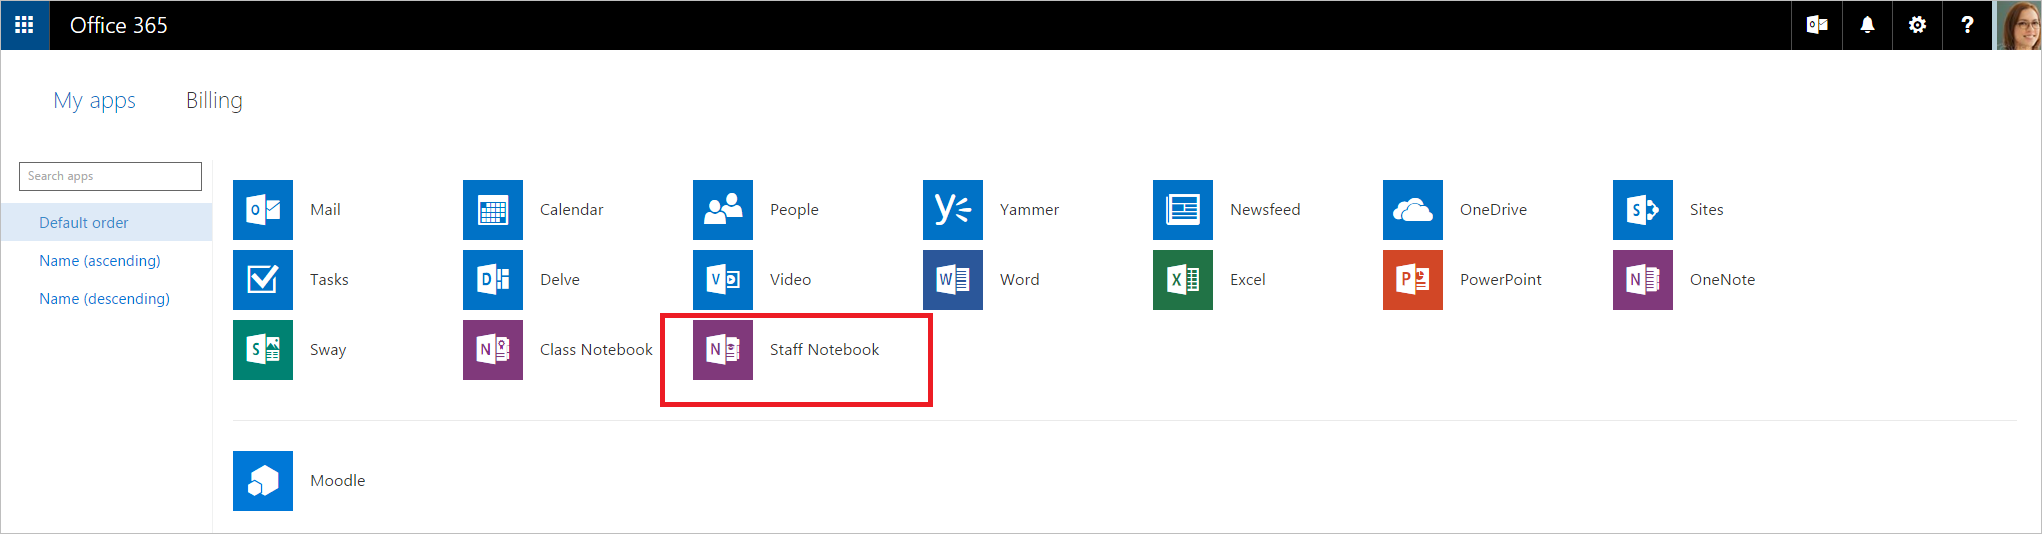 Invite your colleagues to a OneNote Staff Notebook and get them free Office 365 4b